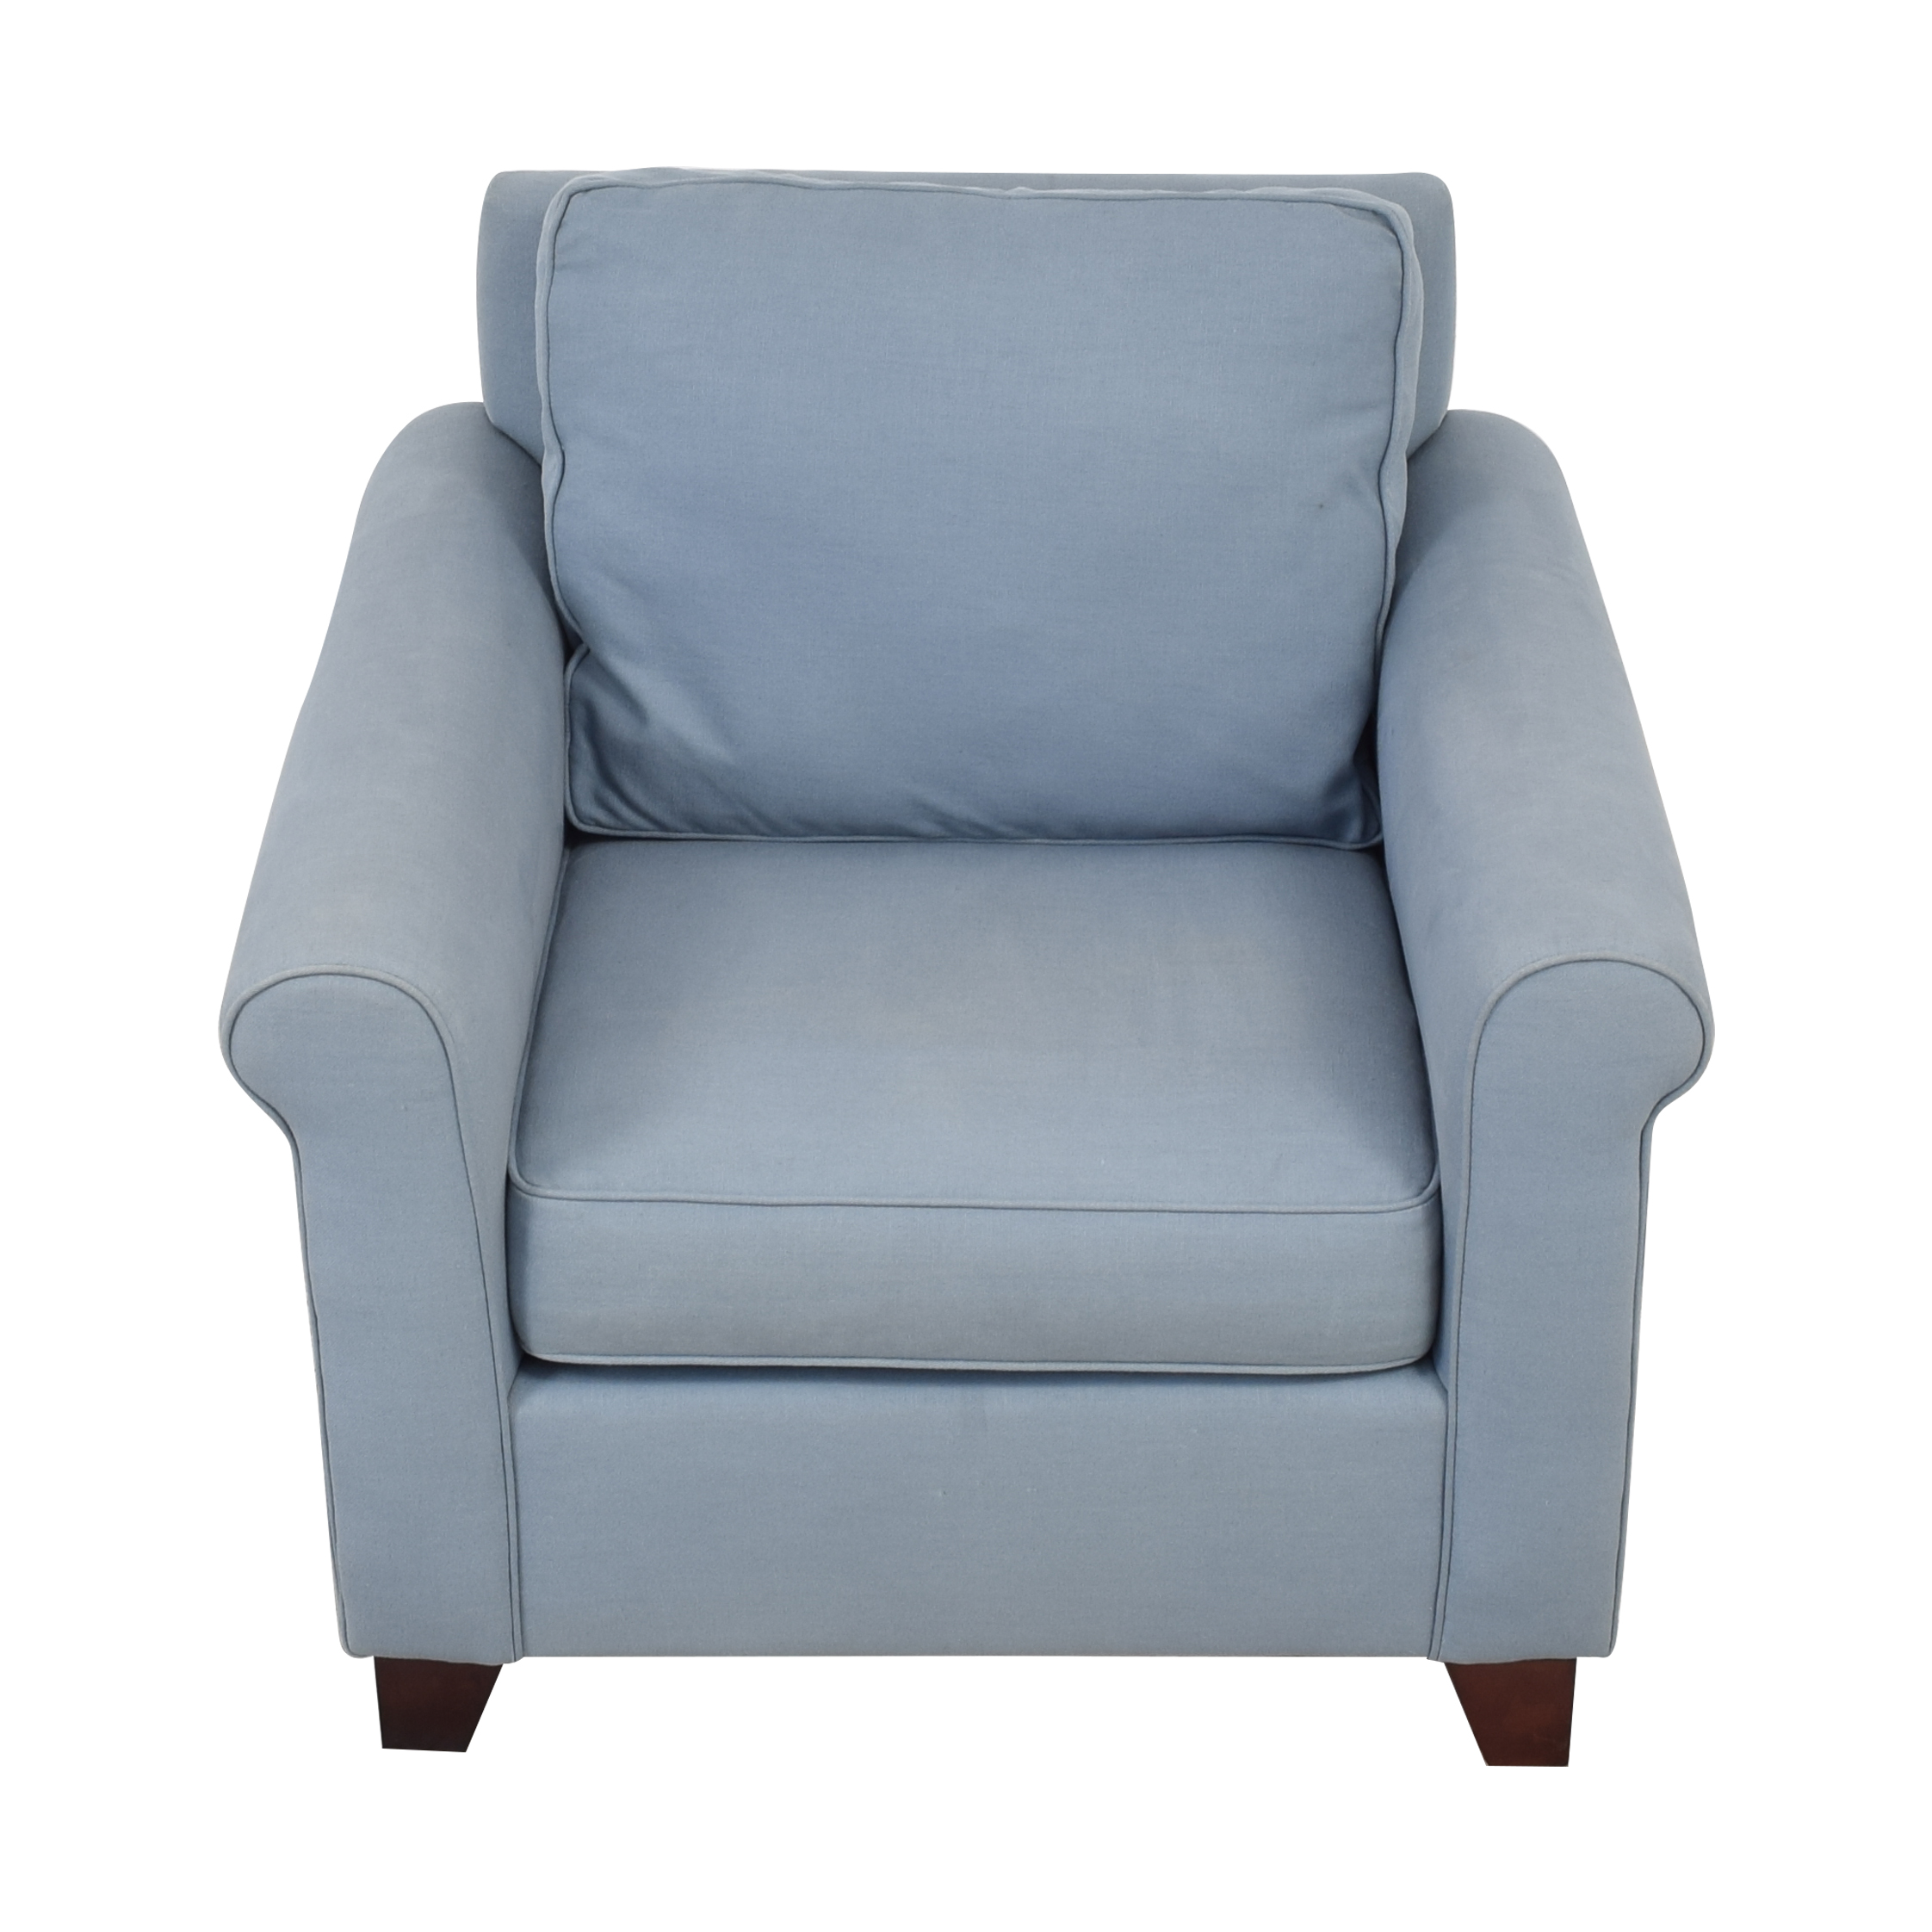 buy Pottery Barn Cameron Upholstered Roll Arm Chair Pottery Barn Chairs